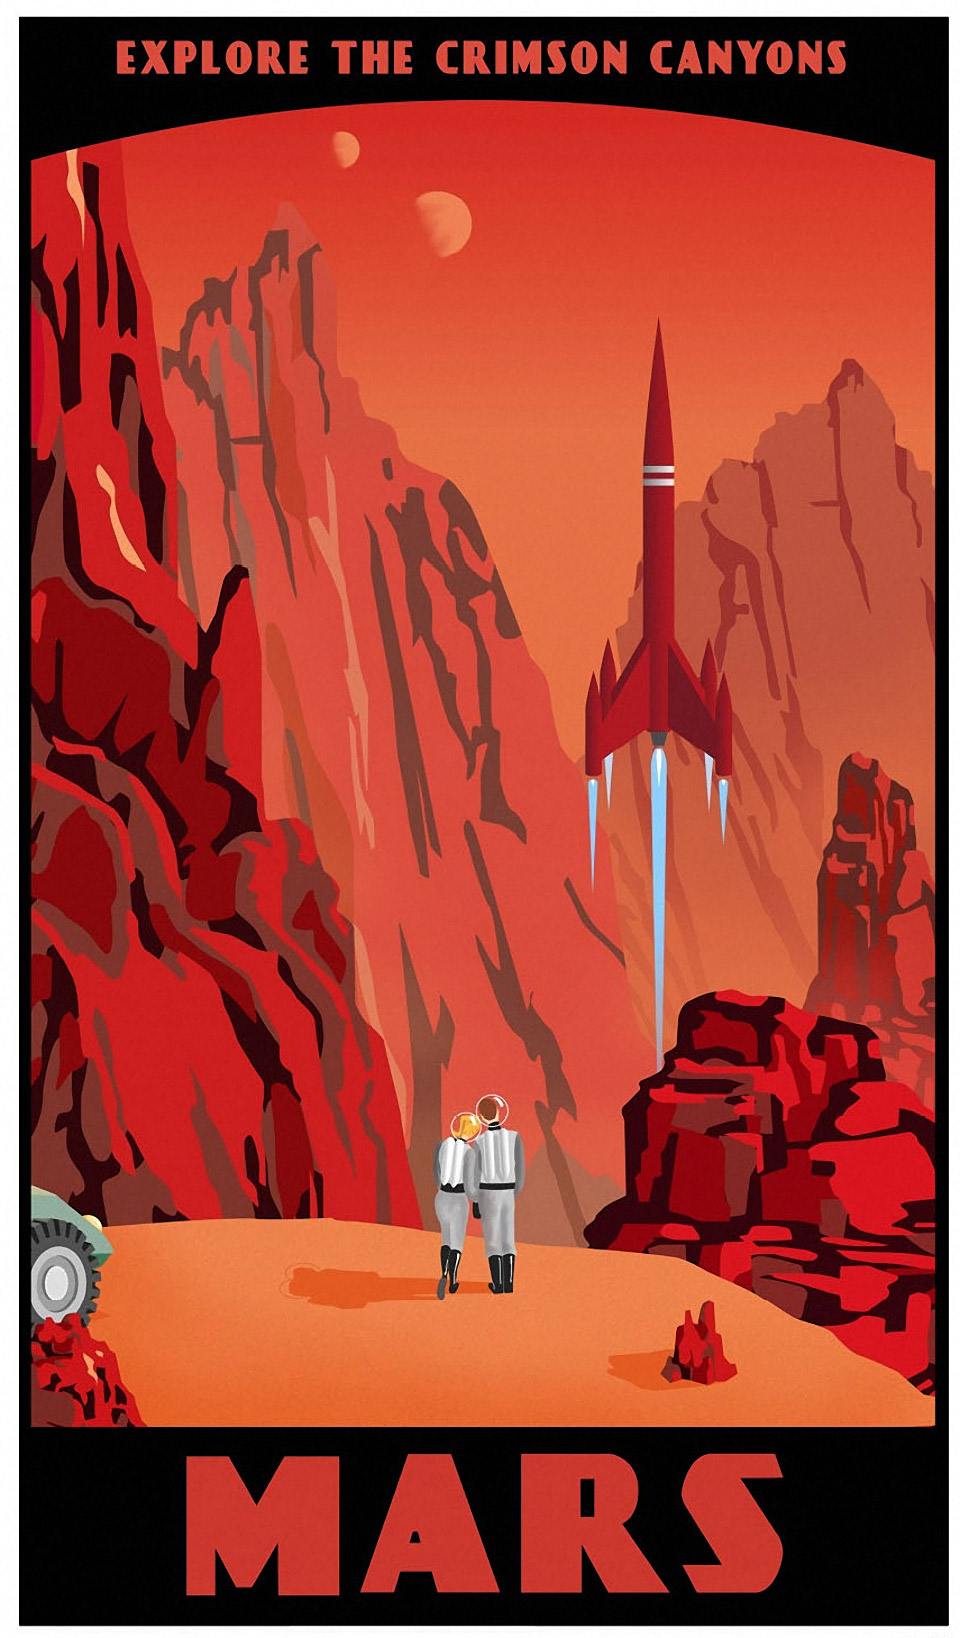 Radiation Makes Mars Travel Too Dangerous